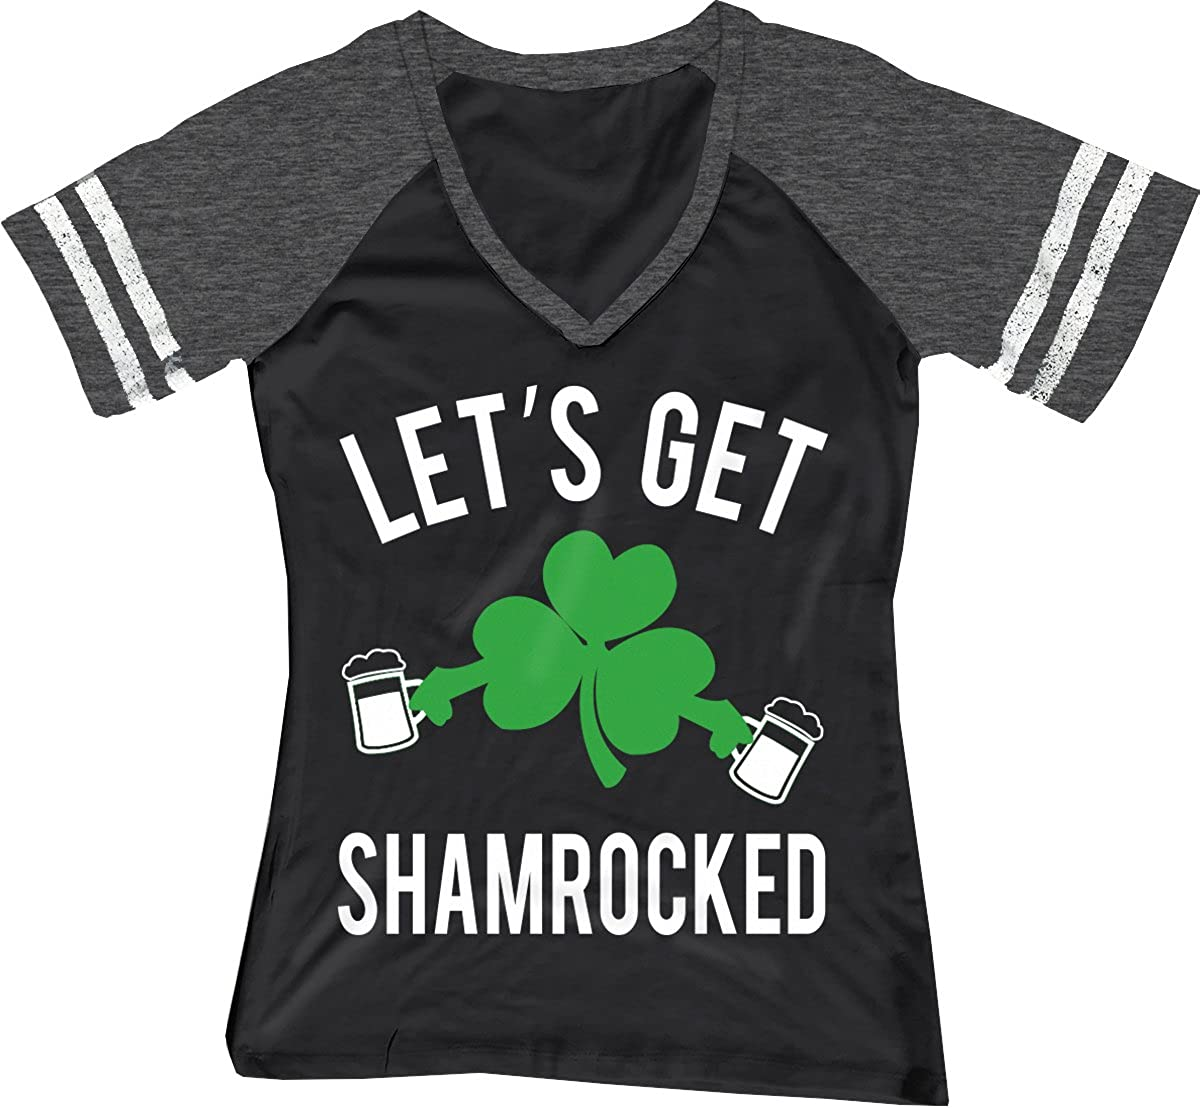 0ffbb1d01 Amazon.com: NoBull Woman Apparel Let's Get Shamrocked ST. Patrick's Day  Shirt Women's Black: Clothing